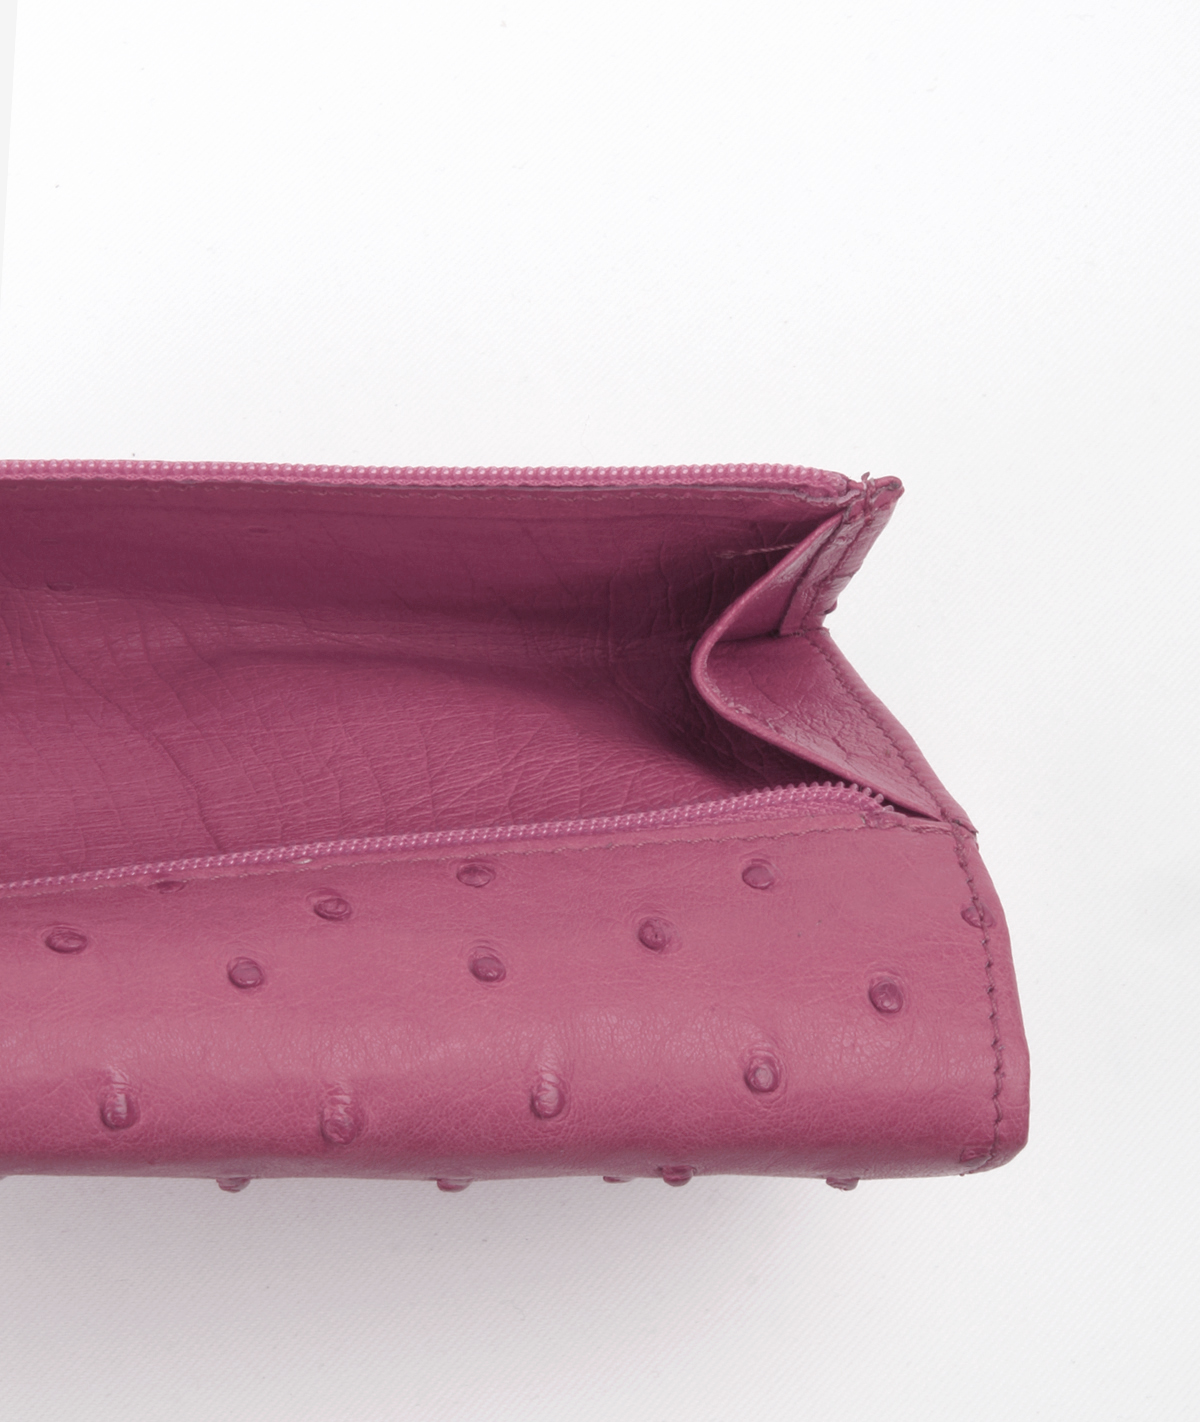 WOMENS WALLET IN INDIAN PINK